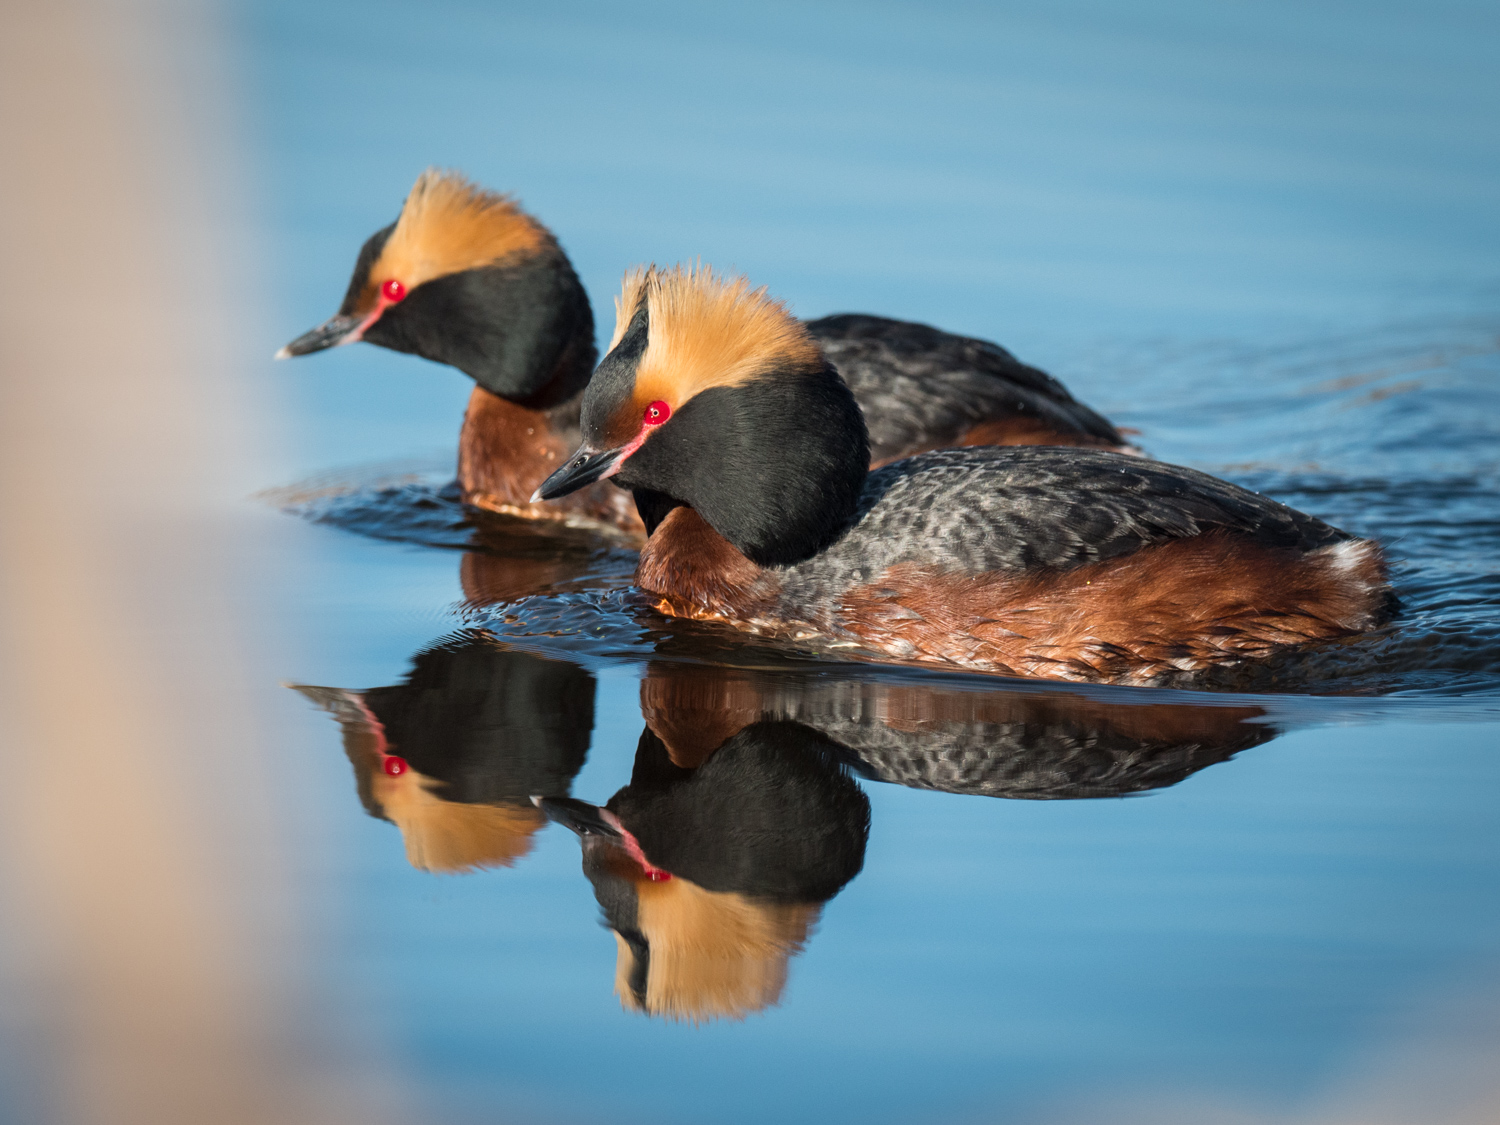 A Guide to Photographing Birds and Wildlife in a Wetland Area - ducks in the water